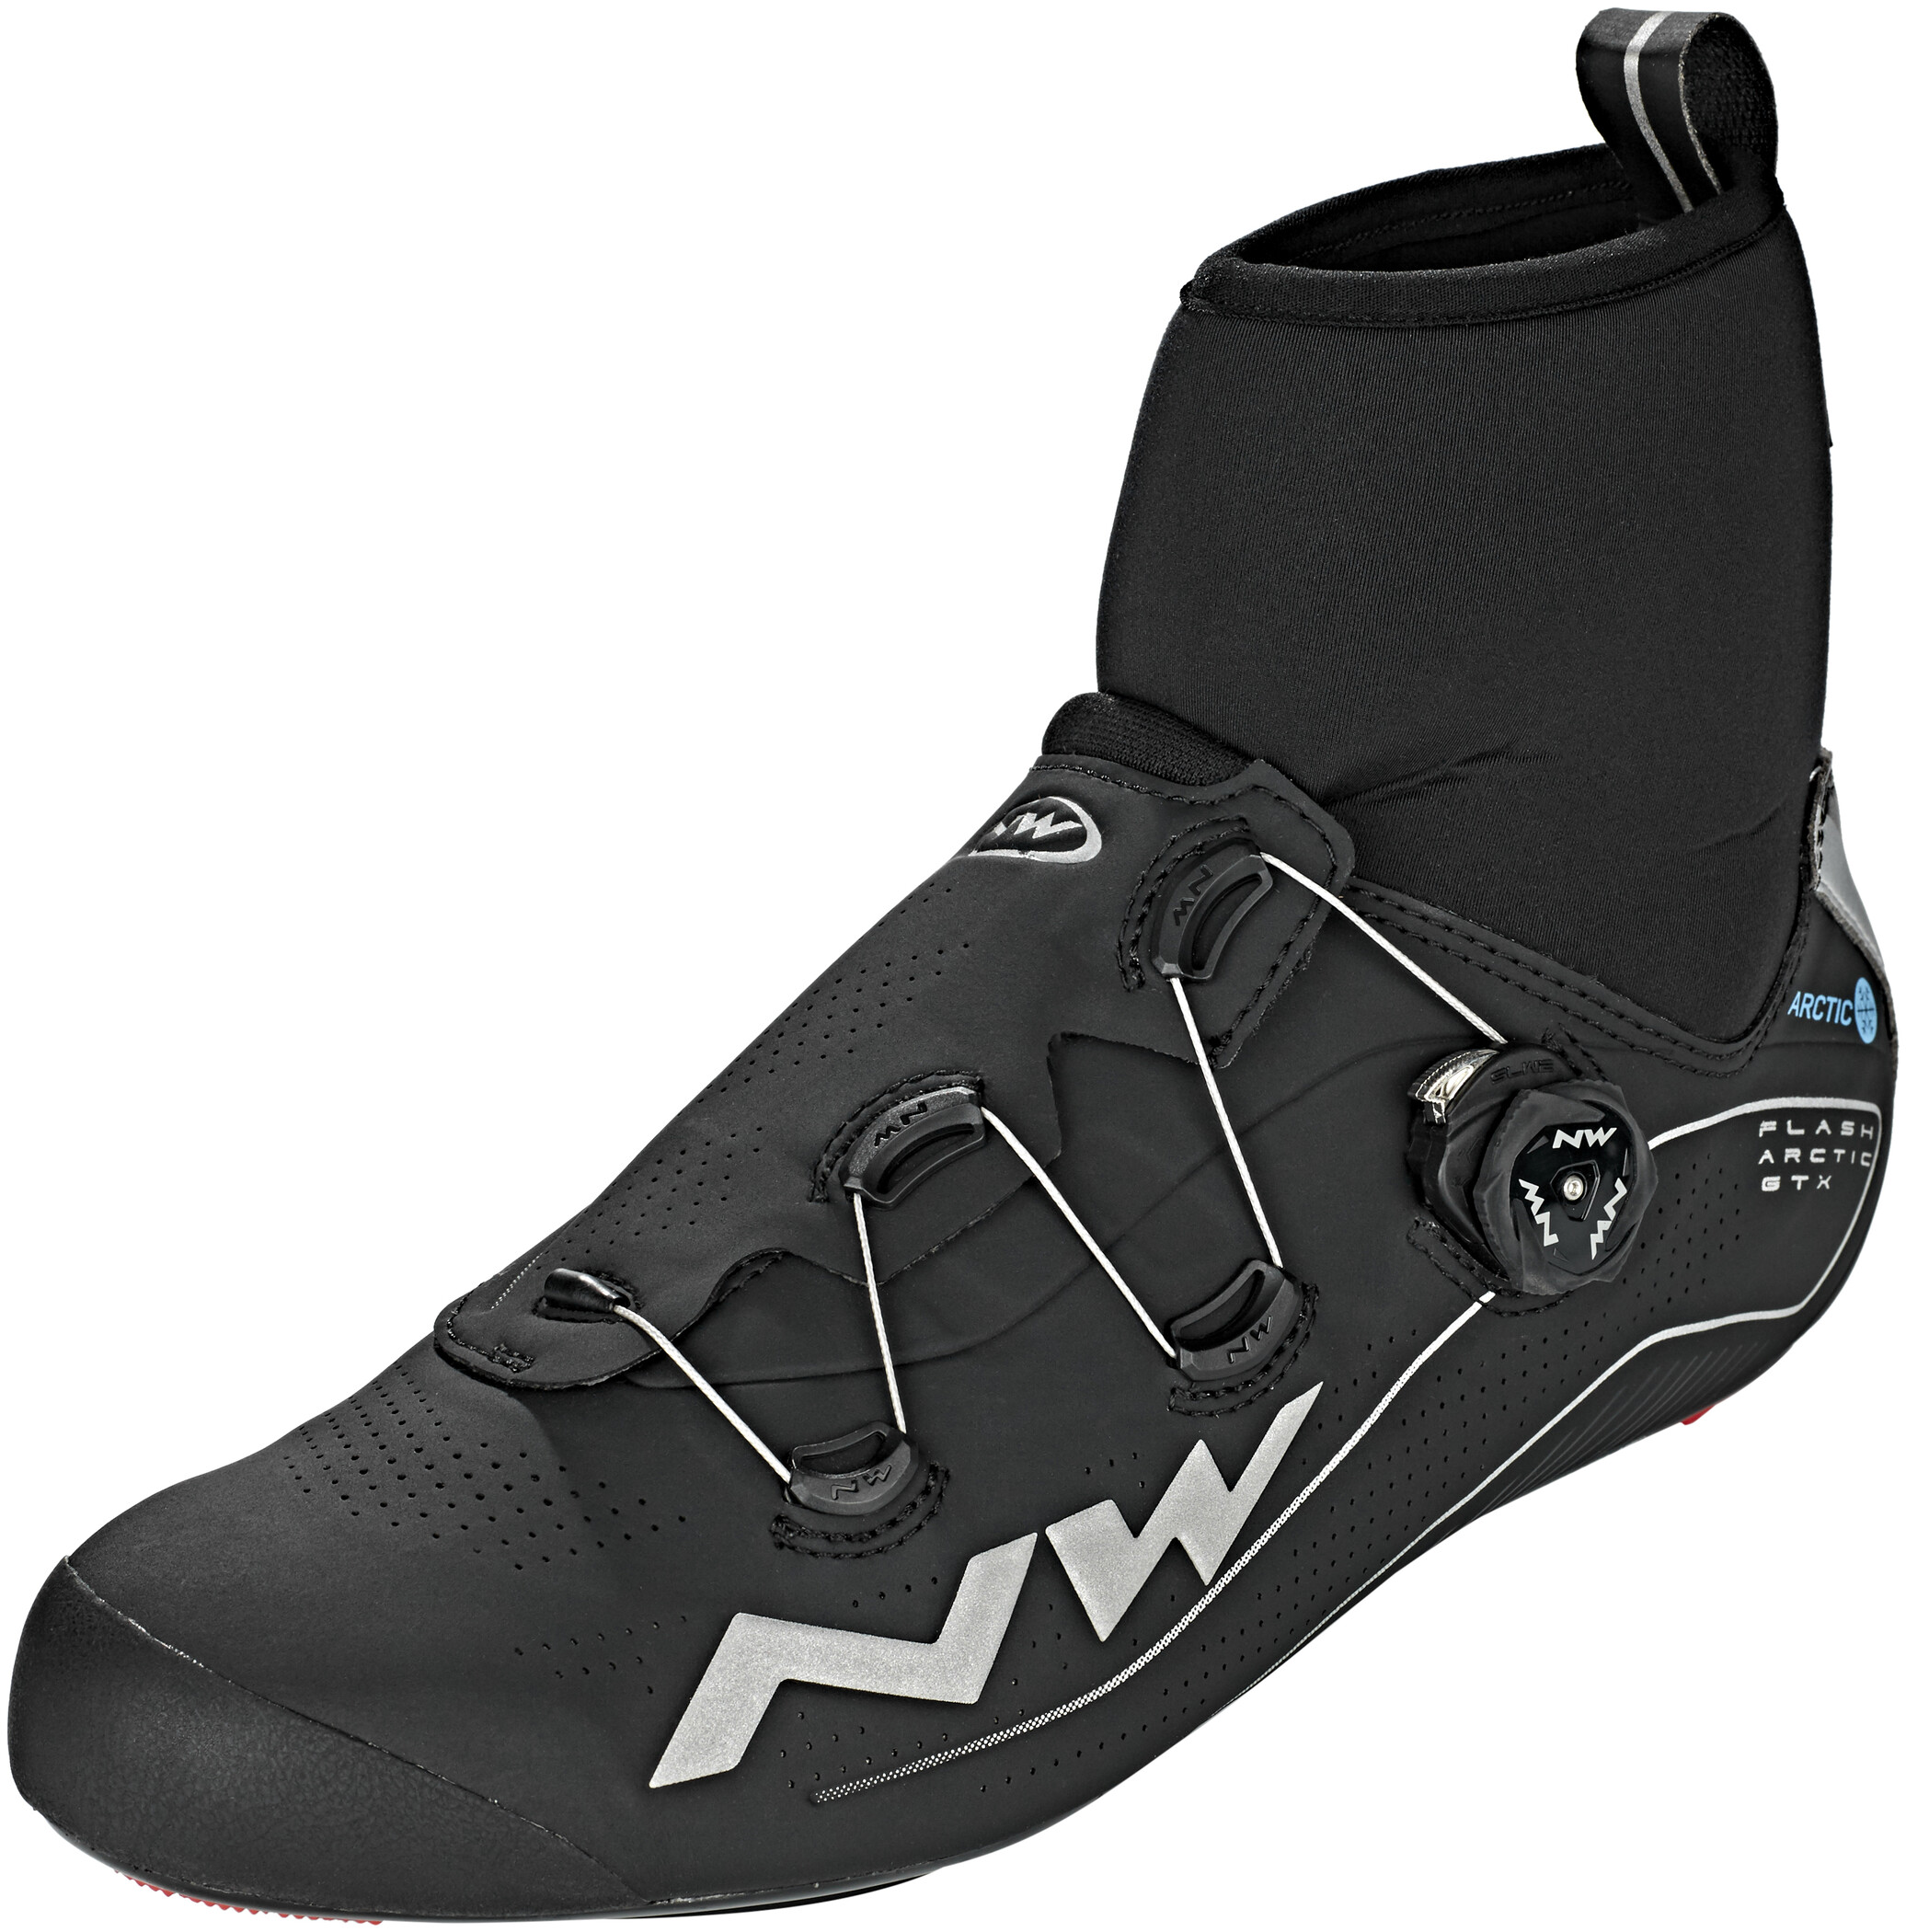 Adidas Wrestling shoes mat Wizard 4. black carbon